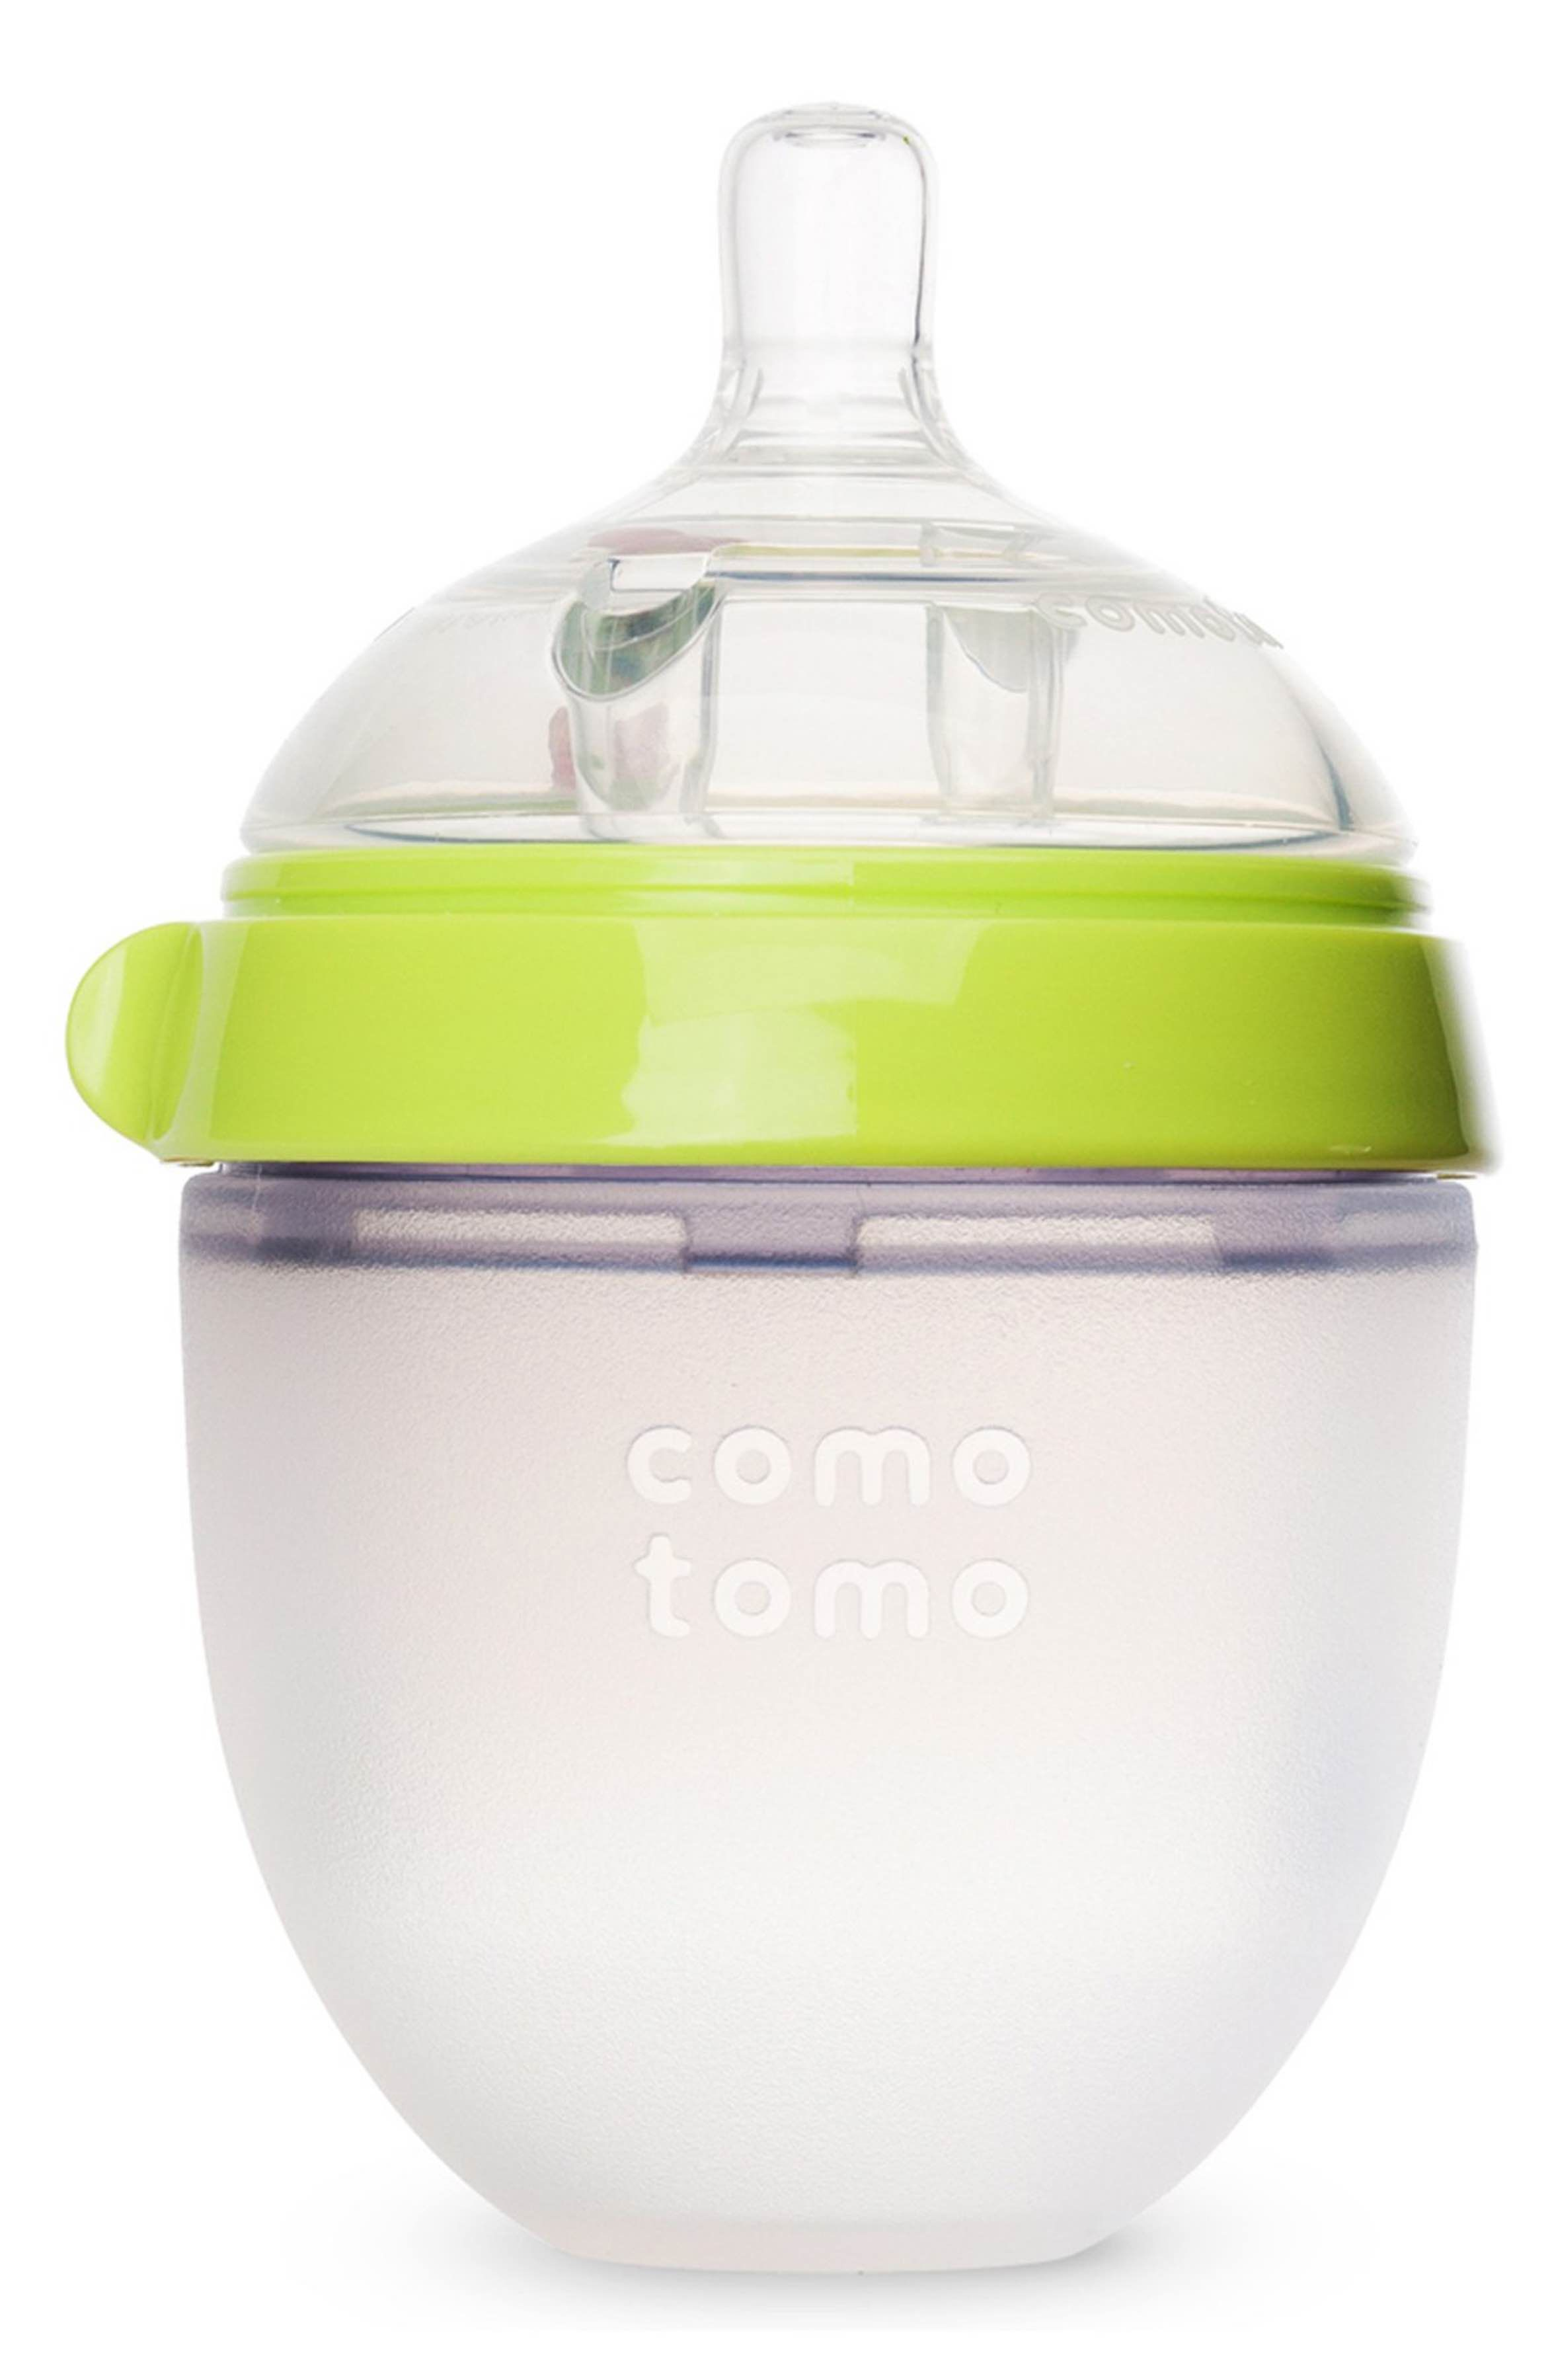 Comotomo slow flow baby bottle with images silicone